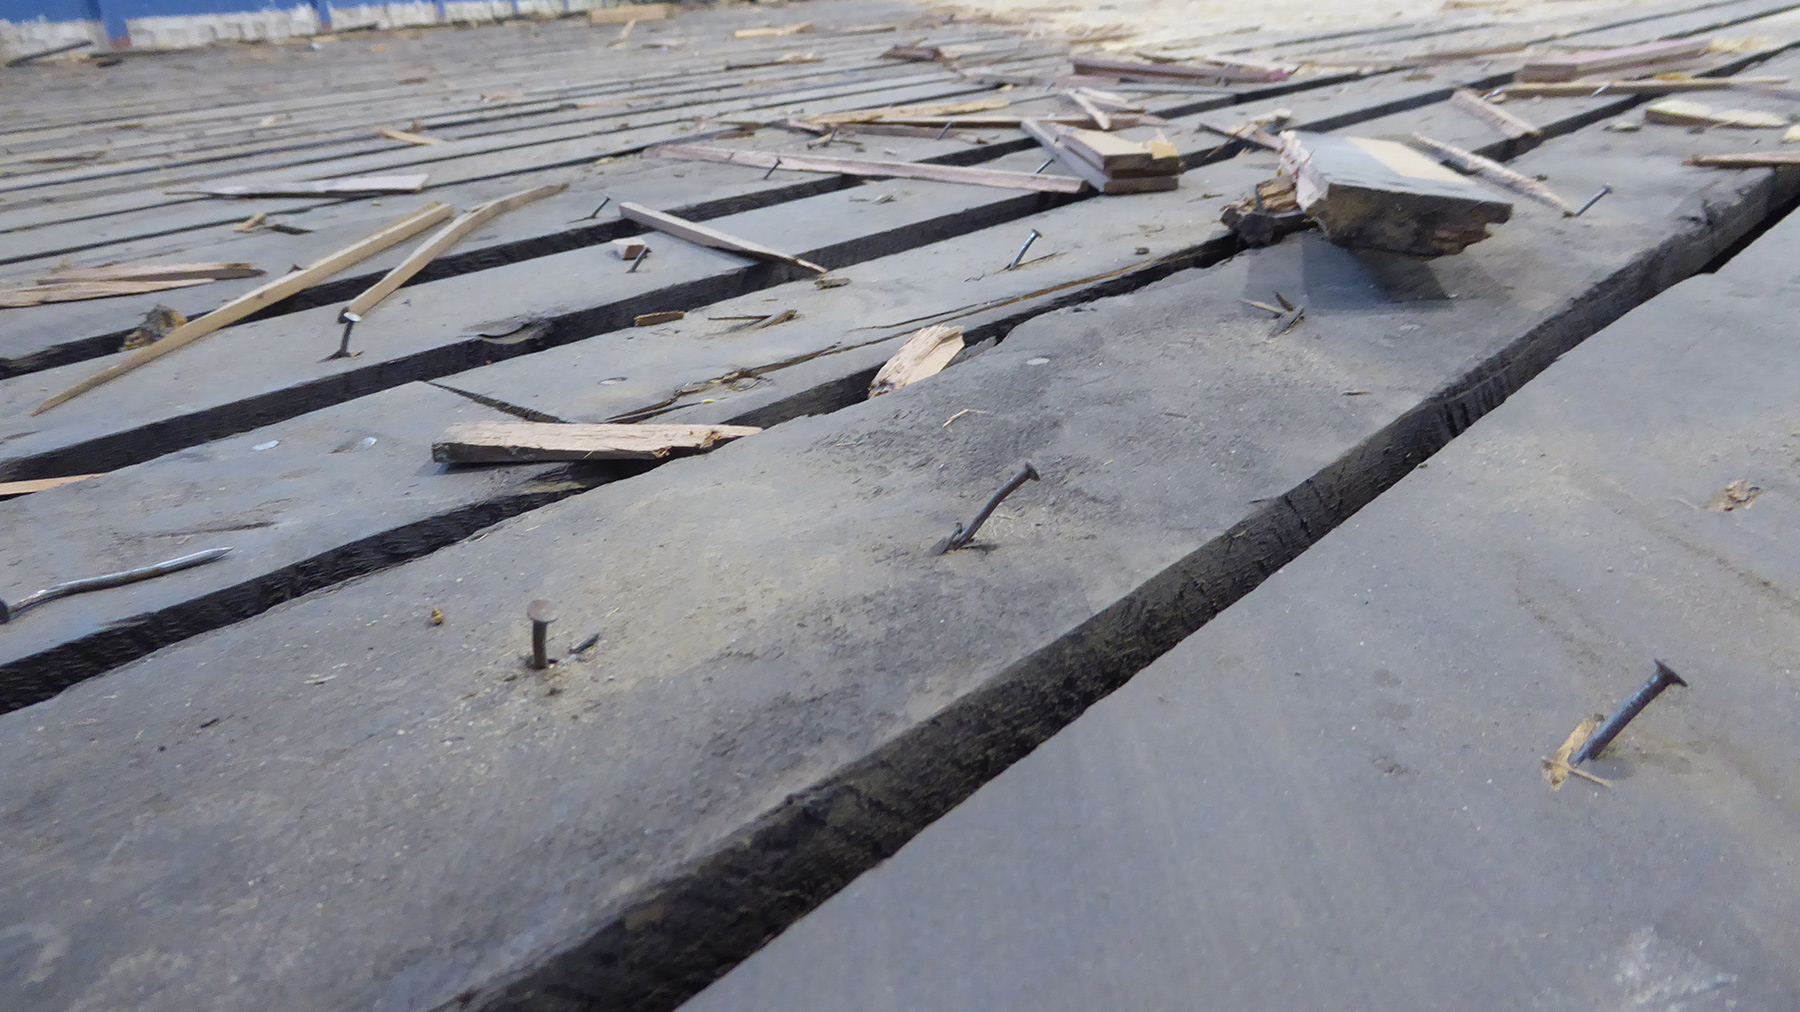 The damaged substructure